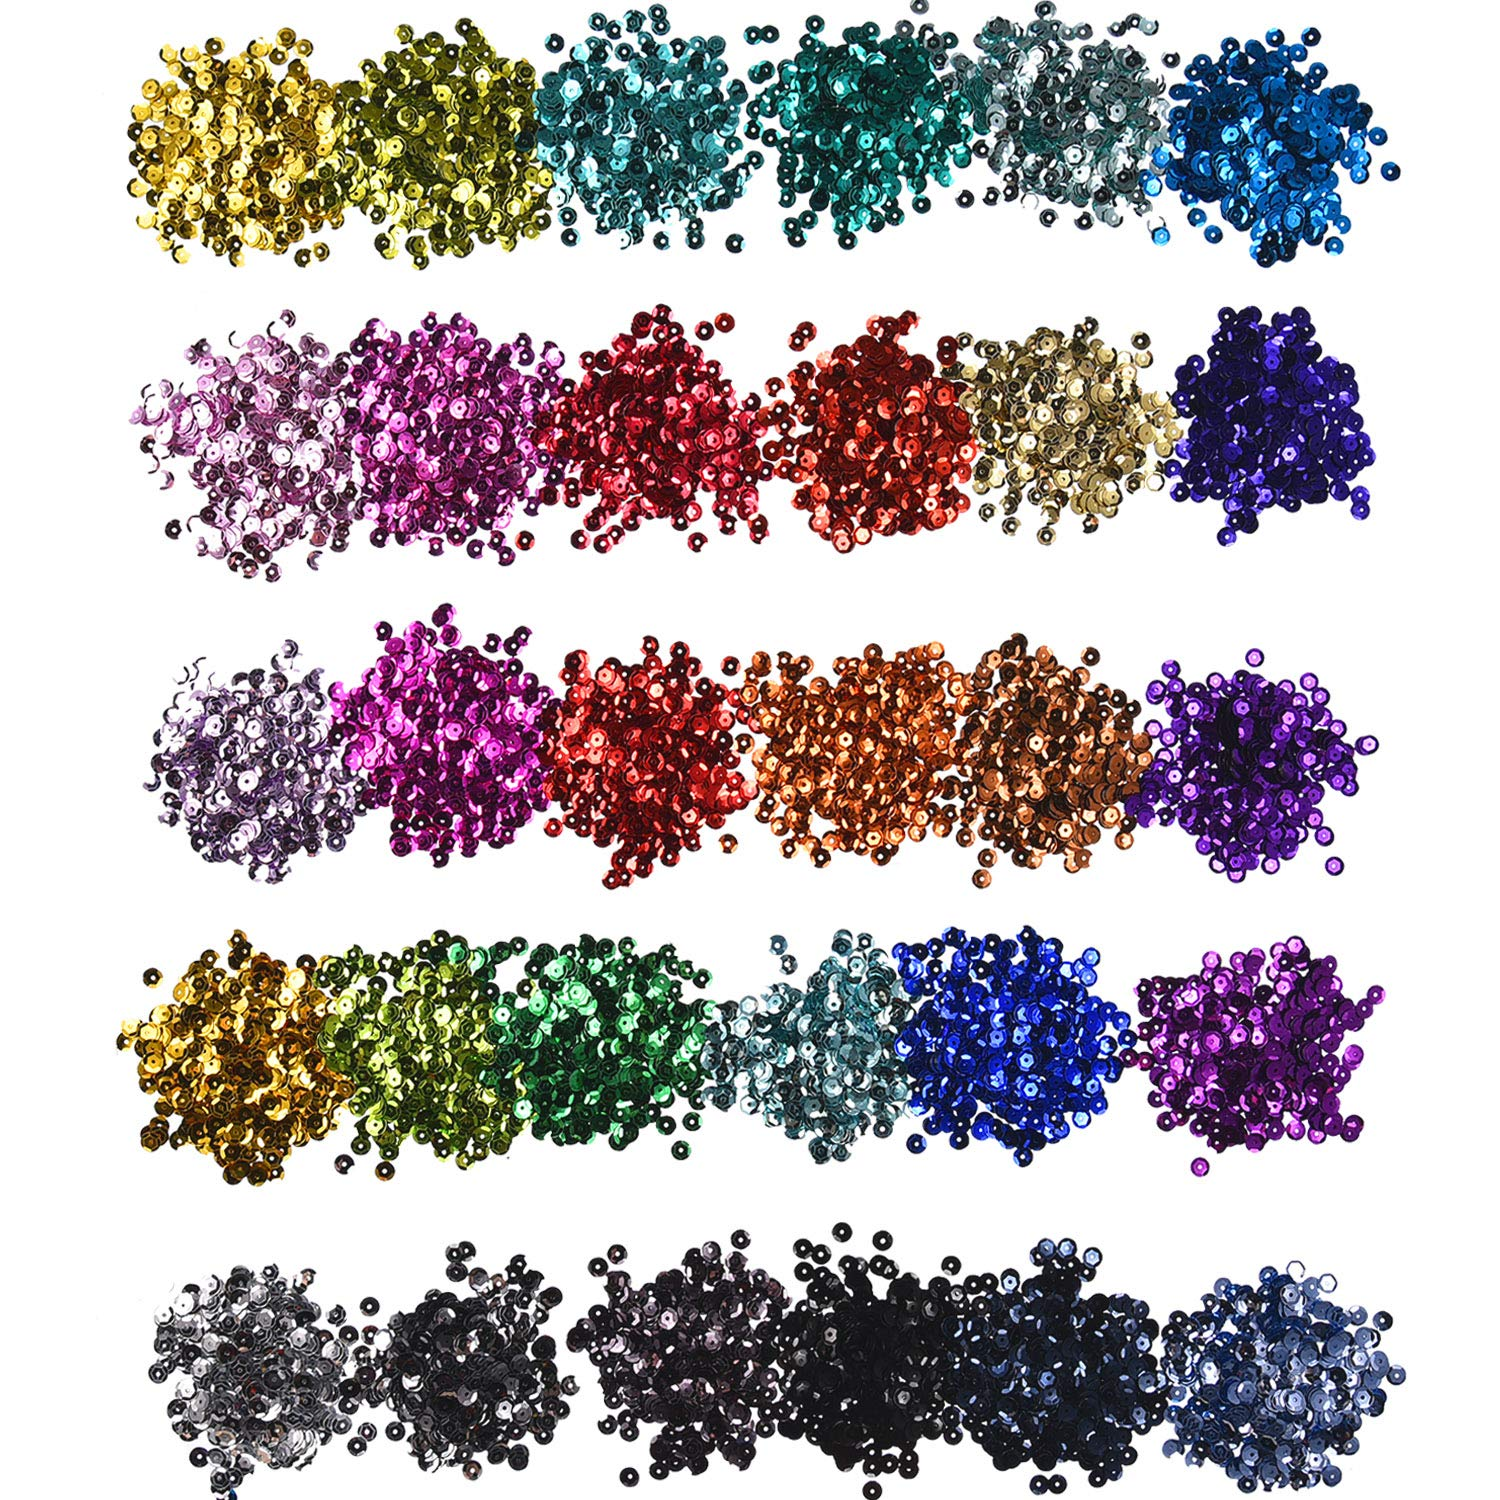 Hestya 30 Colors Loose Sequins Cup Sequin Crafts Iridescent Spangles for DIY Making, 6 mm, 150 Gram 4337033478